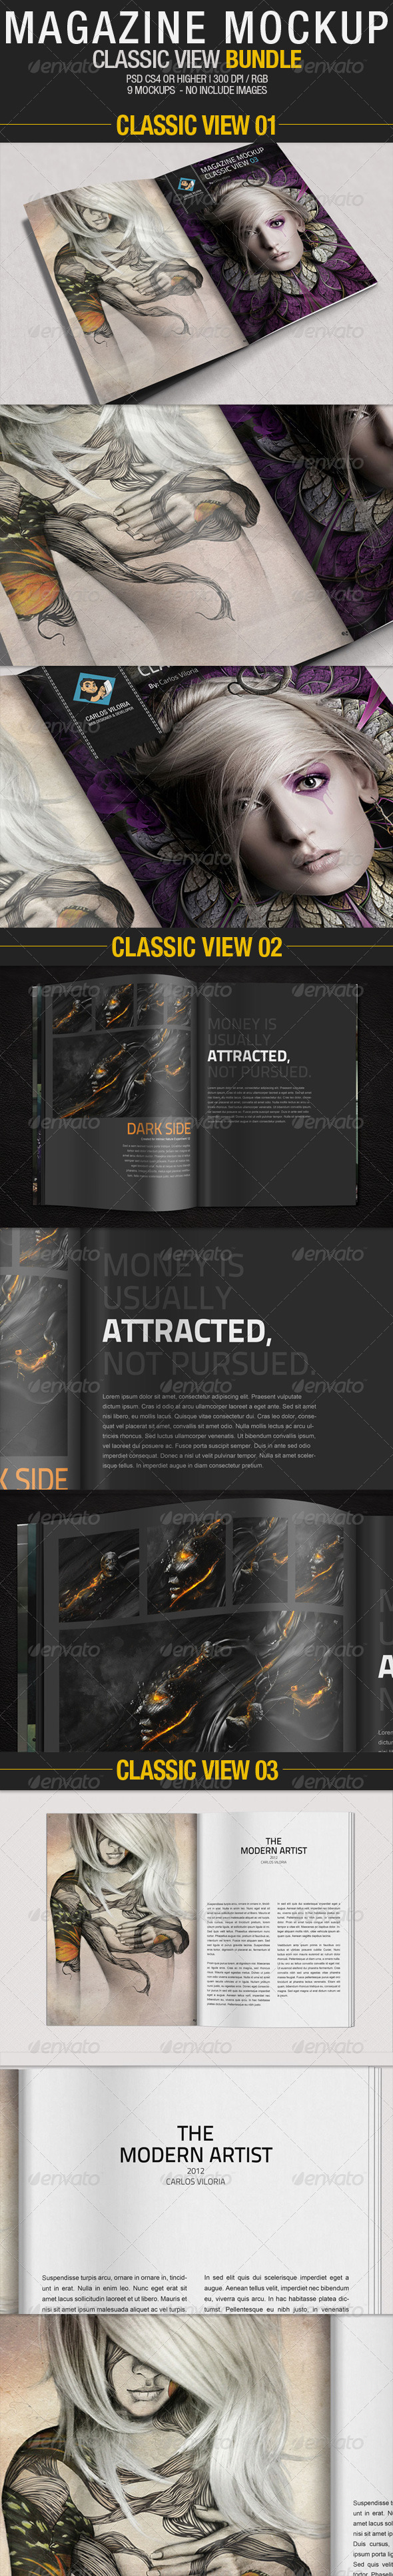 Magazine Mockup Classic View - Bundle - Magazines Print